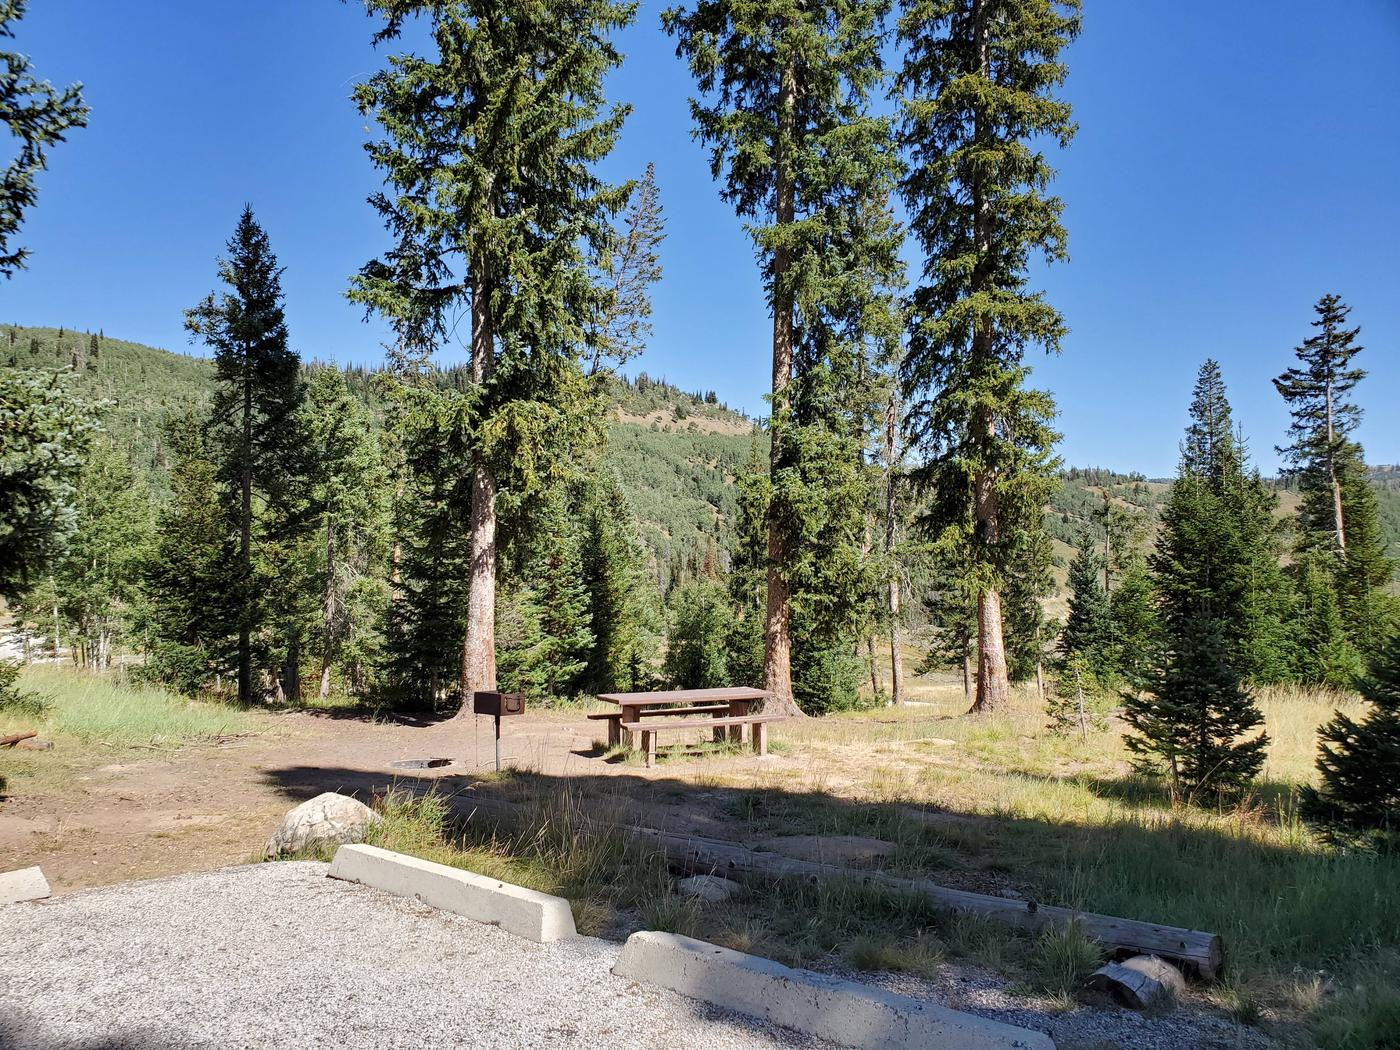 Flat Canyon Campground Site #11aFlat Canyon Campground Site #11